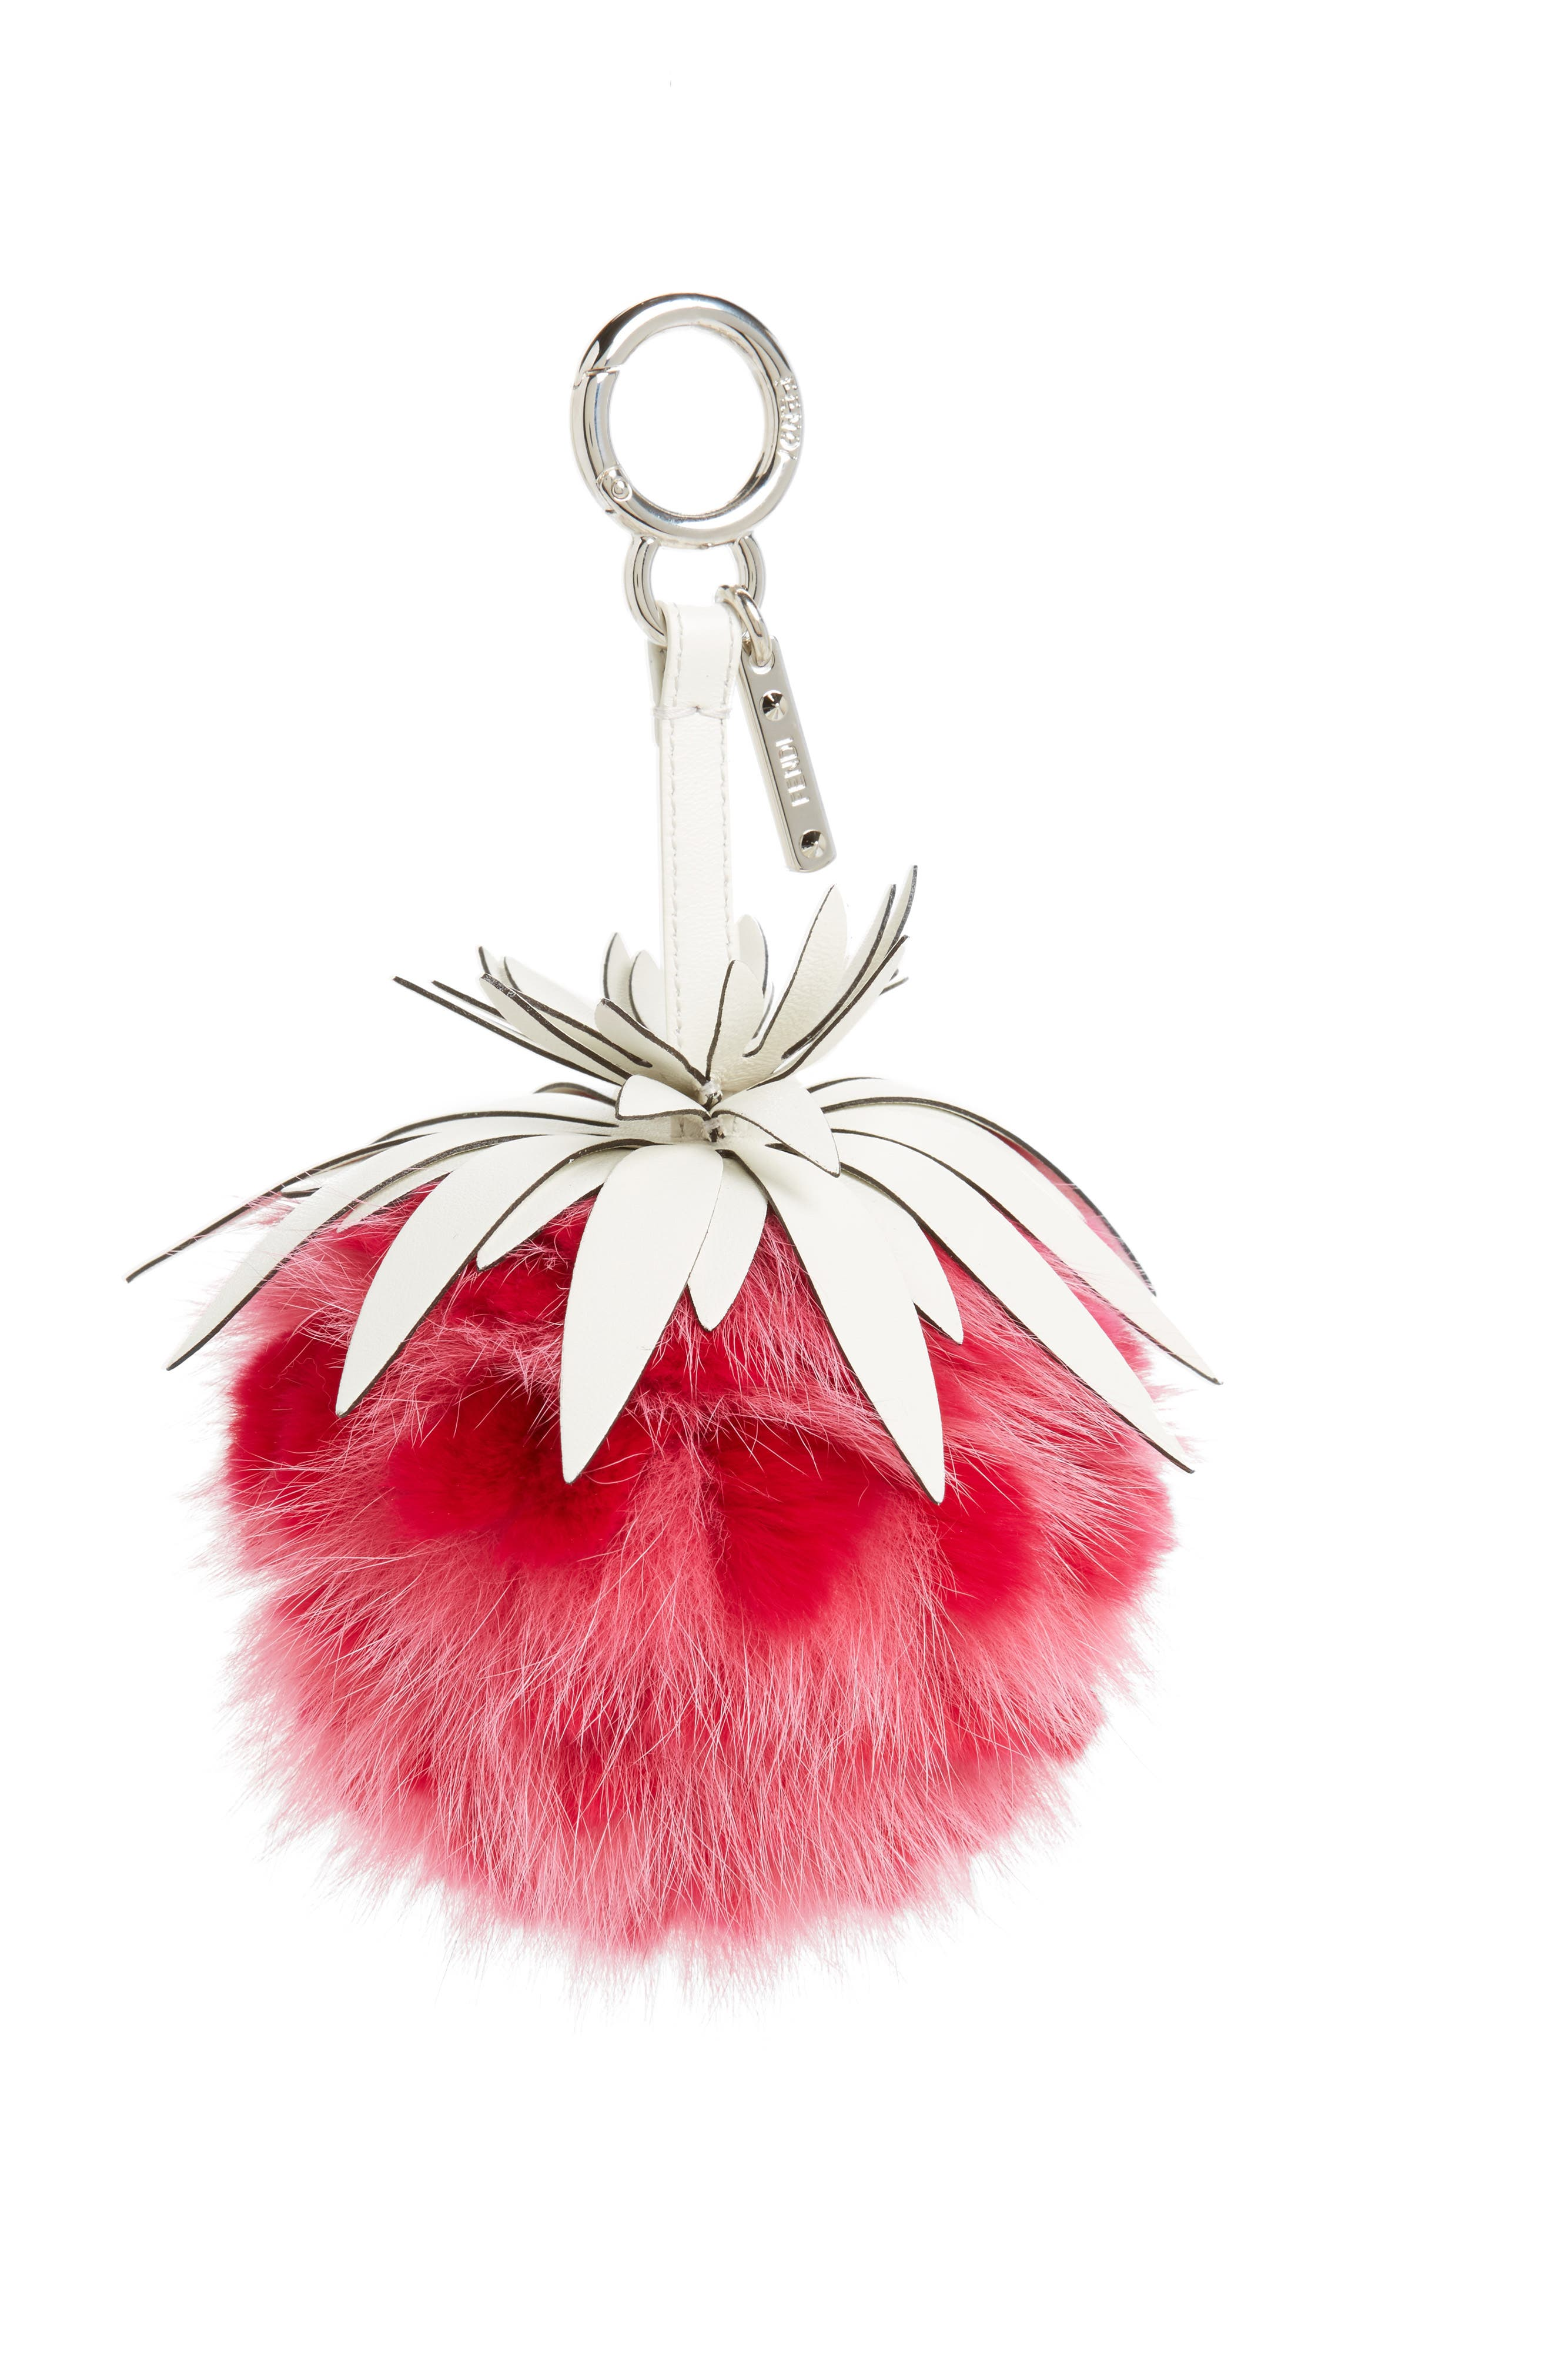 Fendi Strawberry Genuine Fox & Rabbit Fur Bag Charm